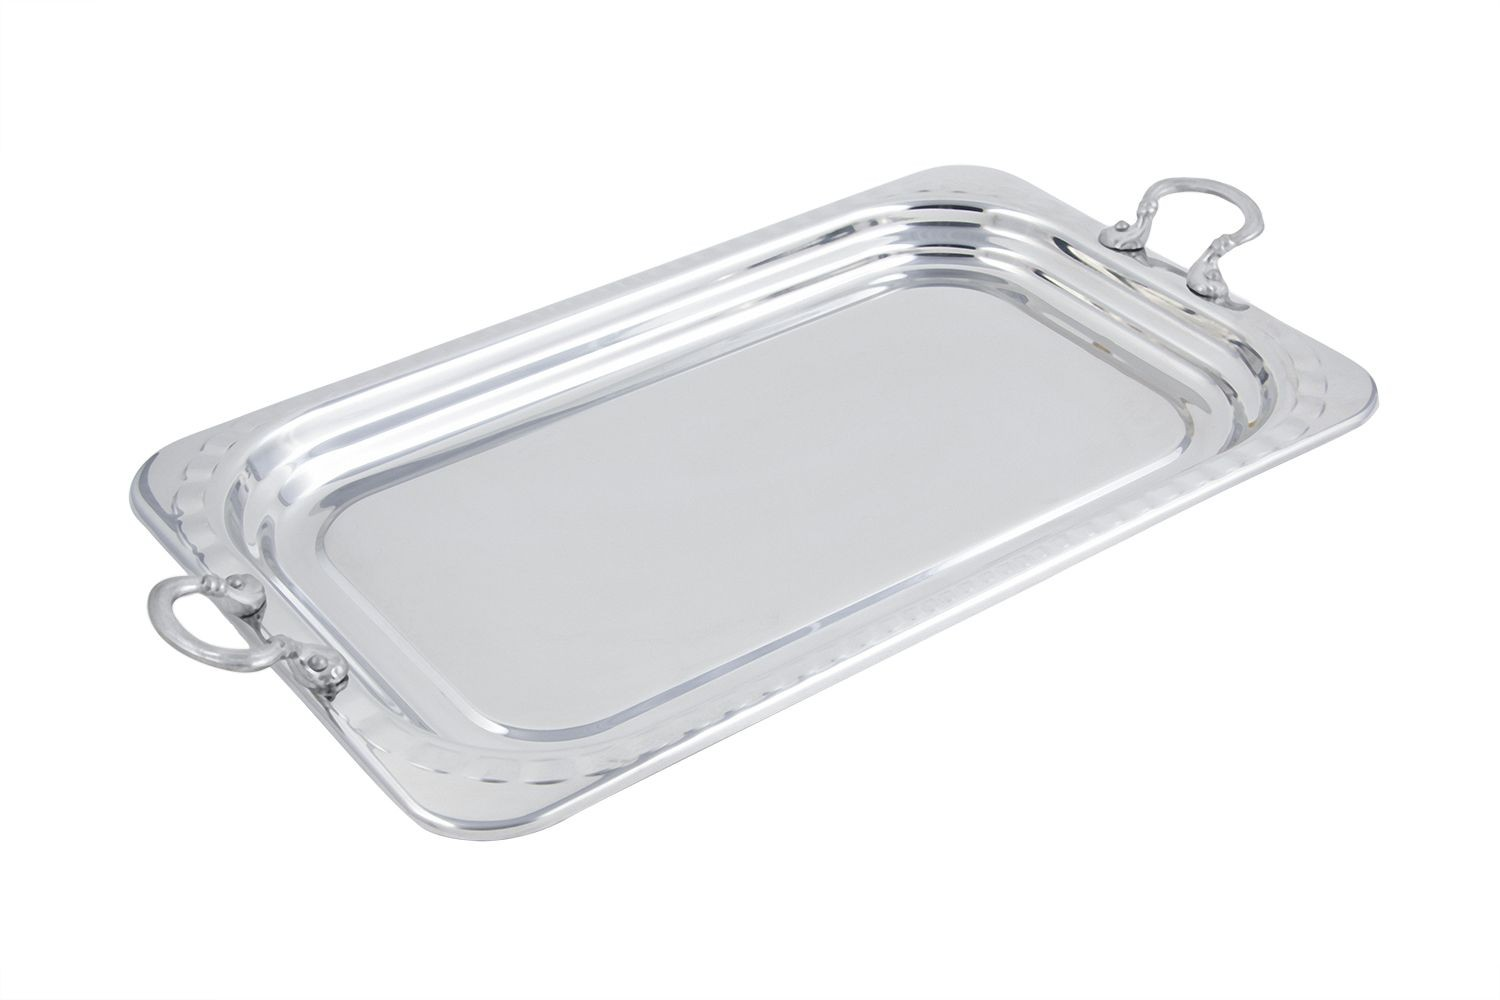 Bon Chef 5607HRSS Arches Design Rectangular Full-Size Food Pan with Round Handles, 4 1/2 Qt.